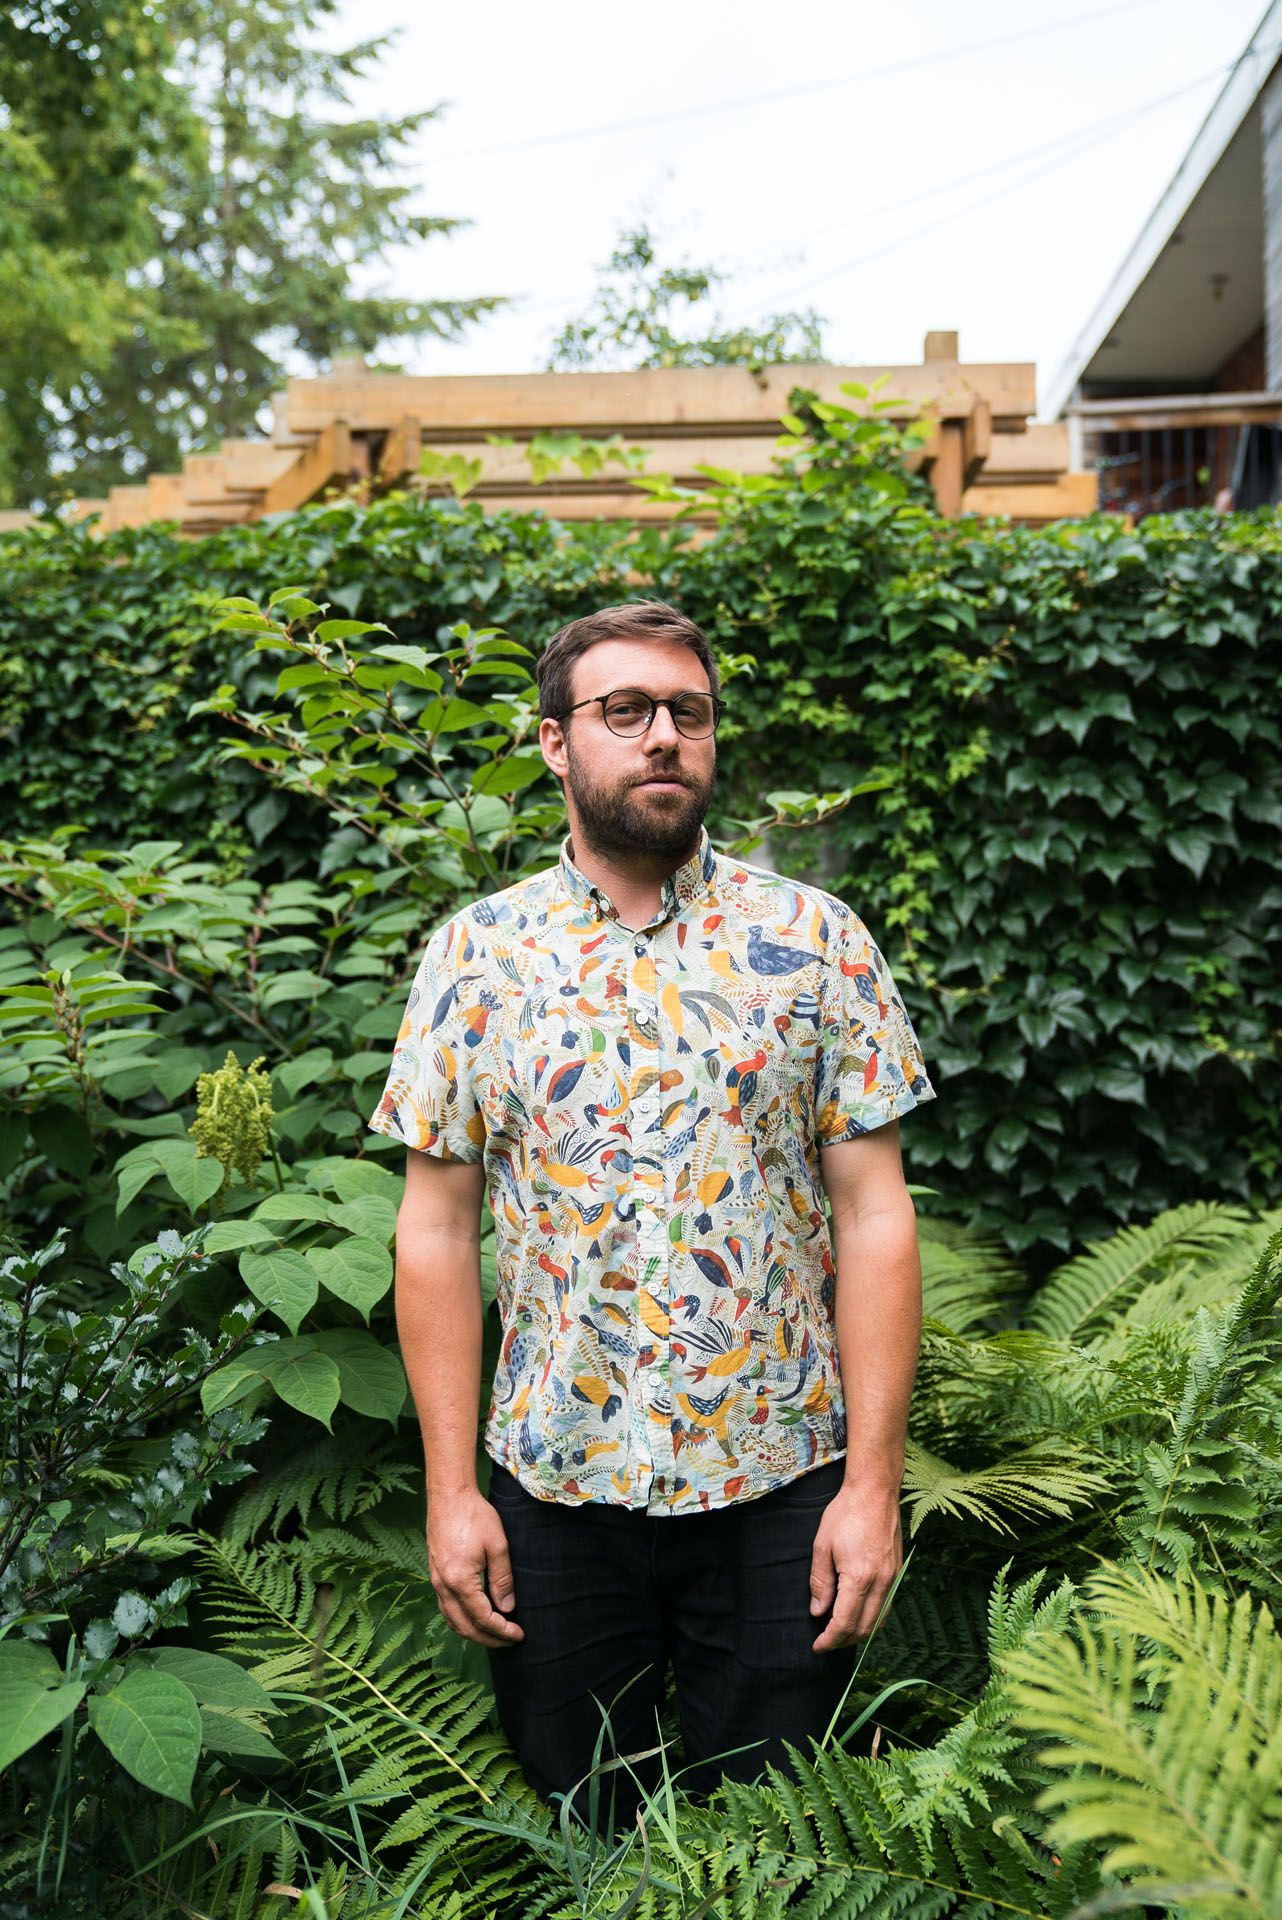 bearded man wearing shirt with colorful birds standing in middle of high plants by bruno florin for mile-ex mille vies